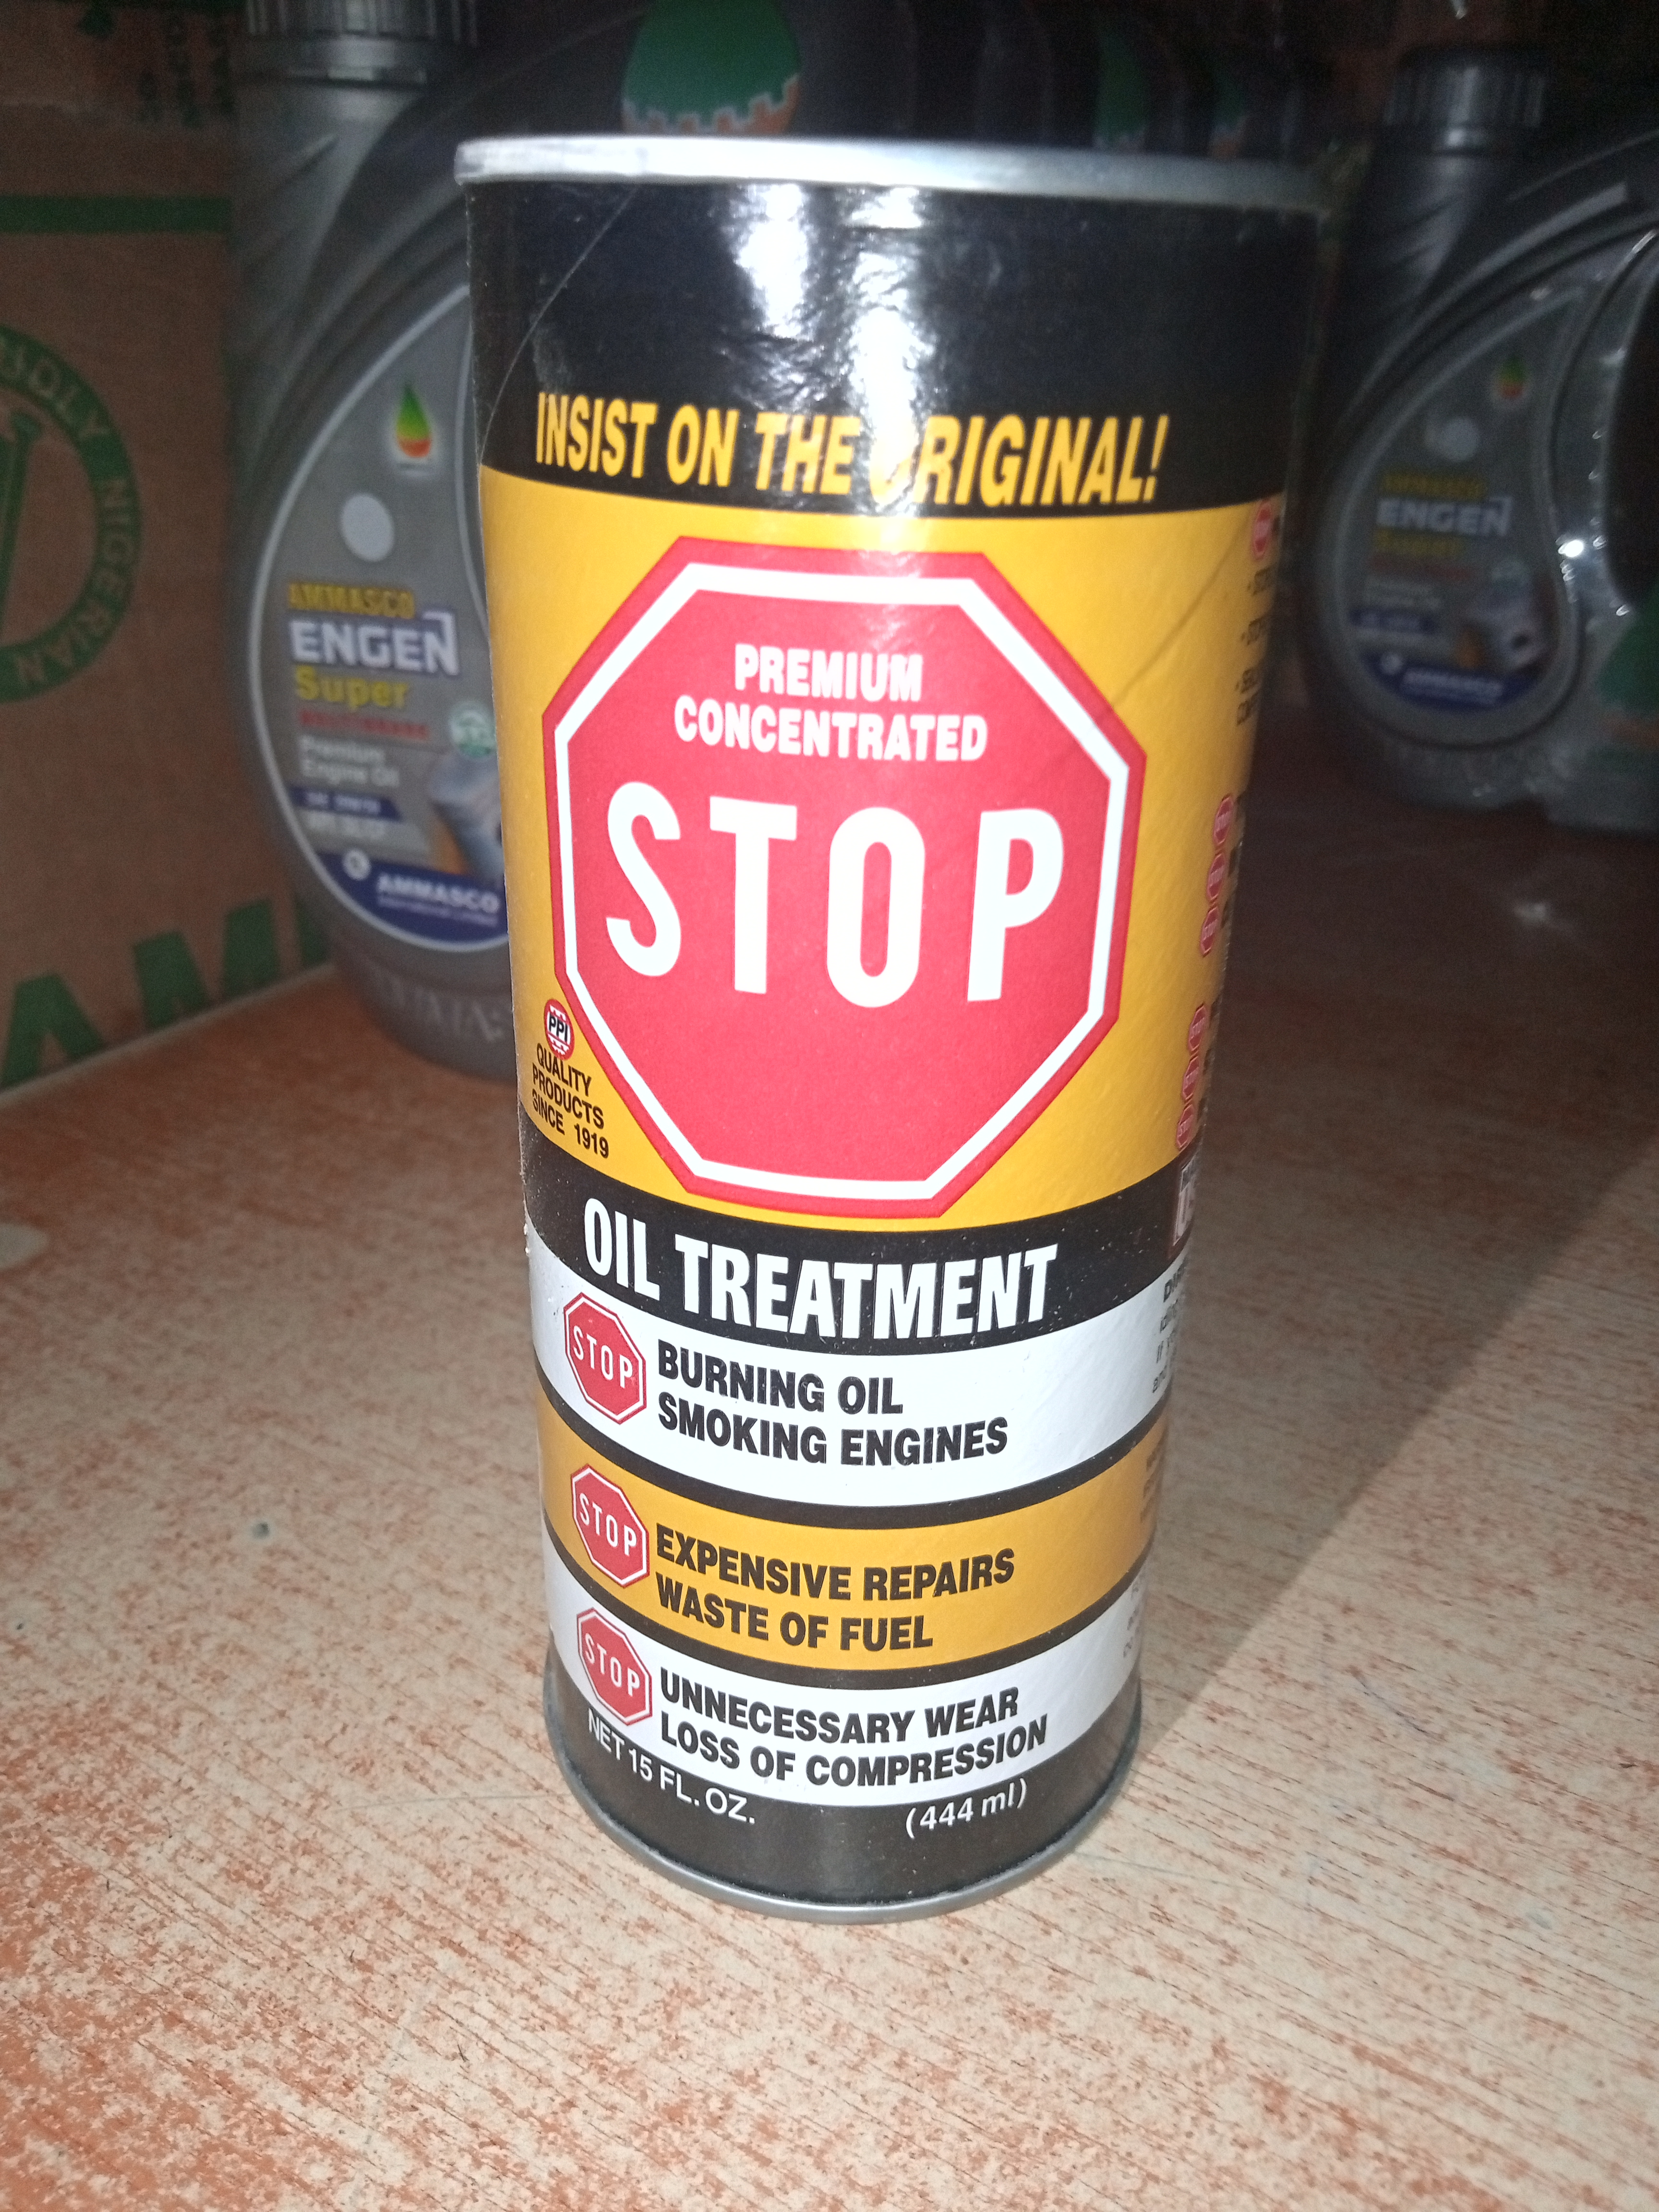 NEW PREMIUM CONCENTRATED OIL TREATMENT